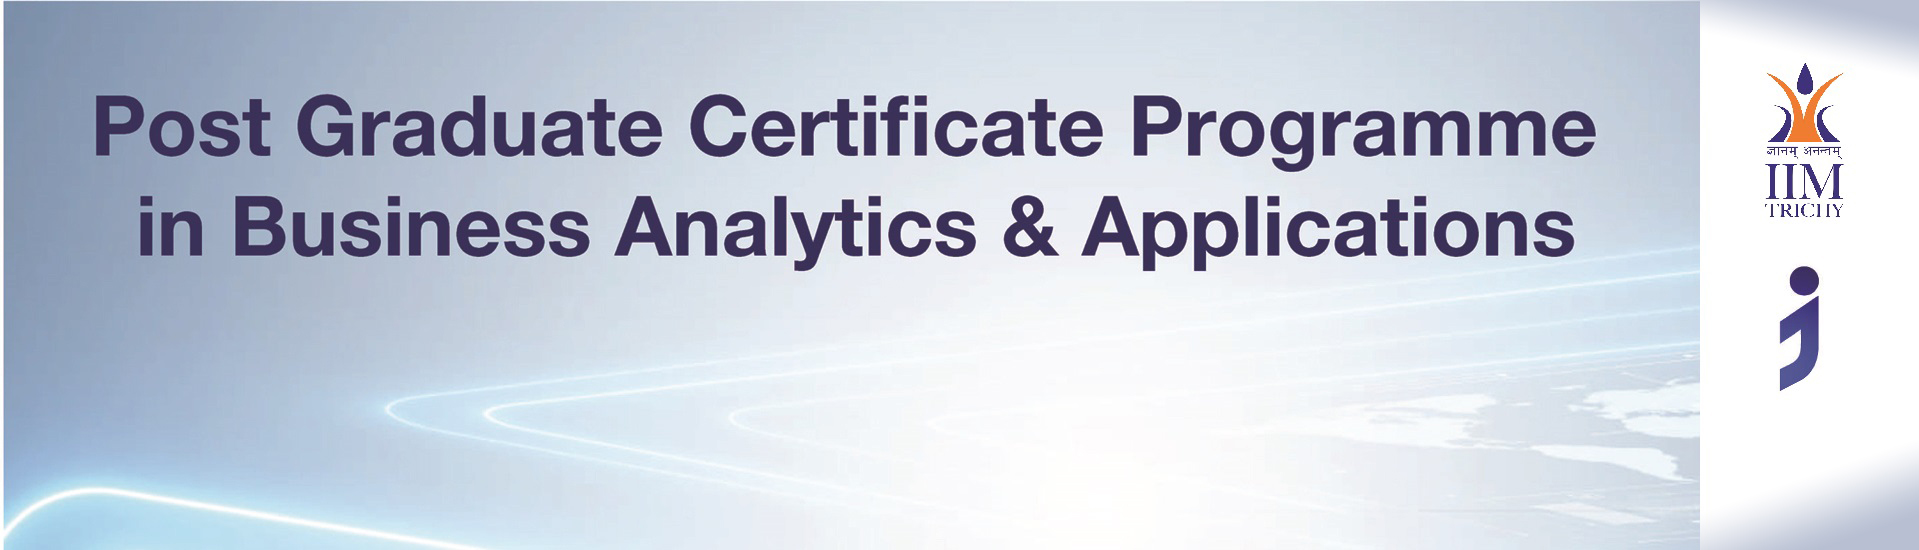 Post Graduate Certificate Programme in Business Analytics & Applications